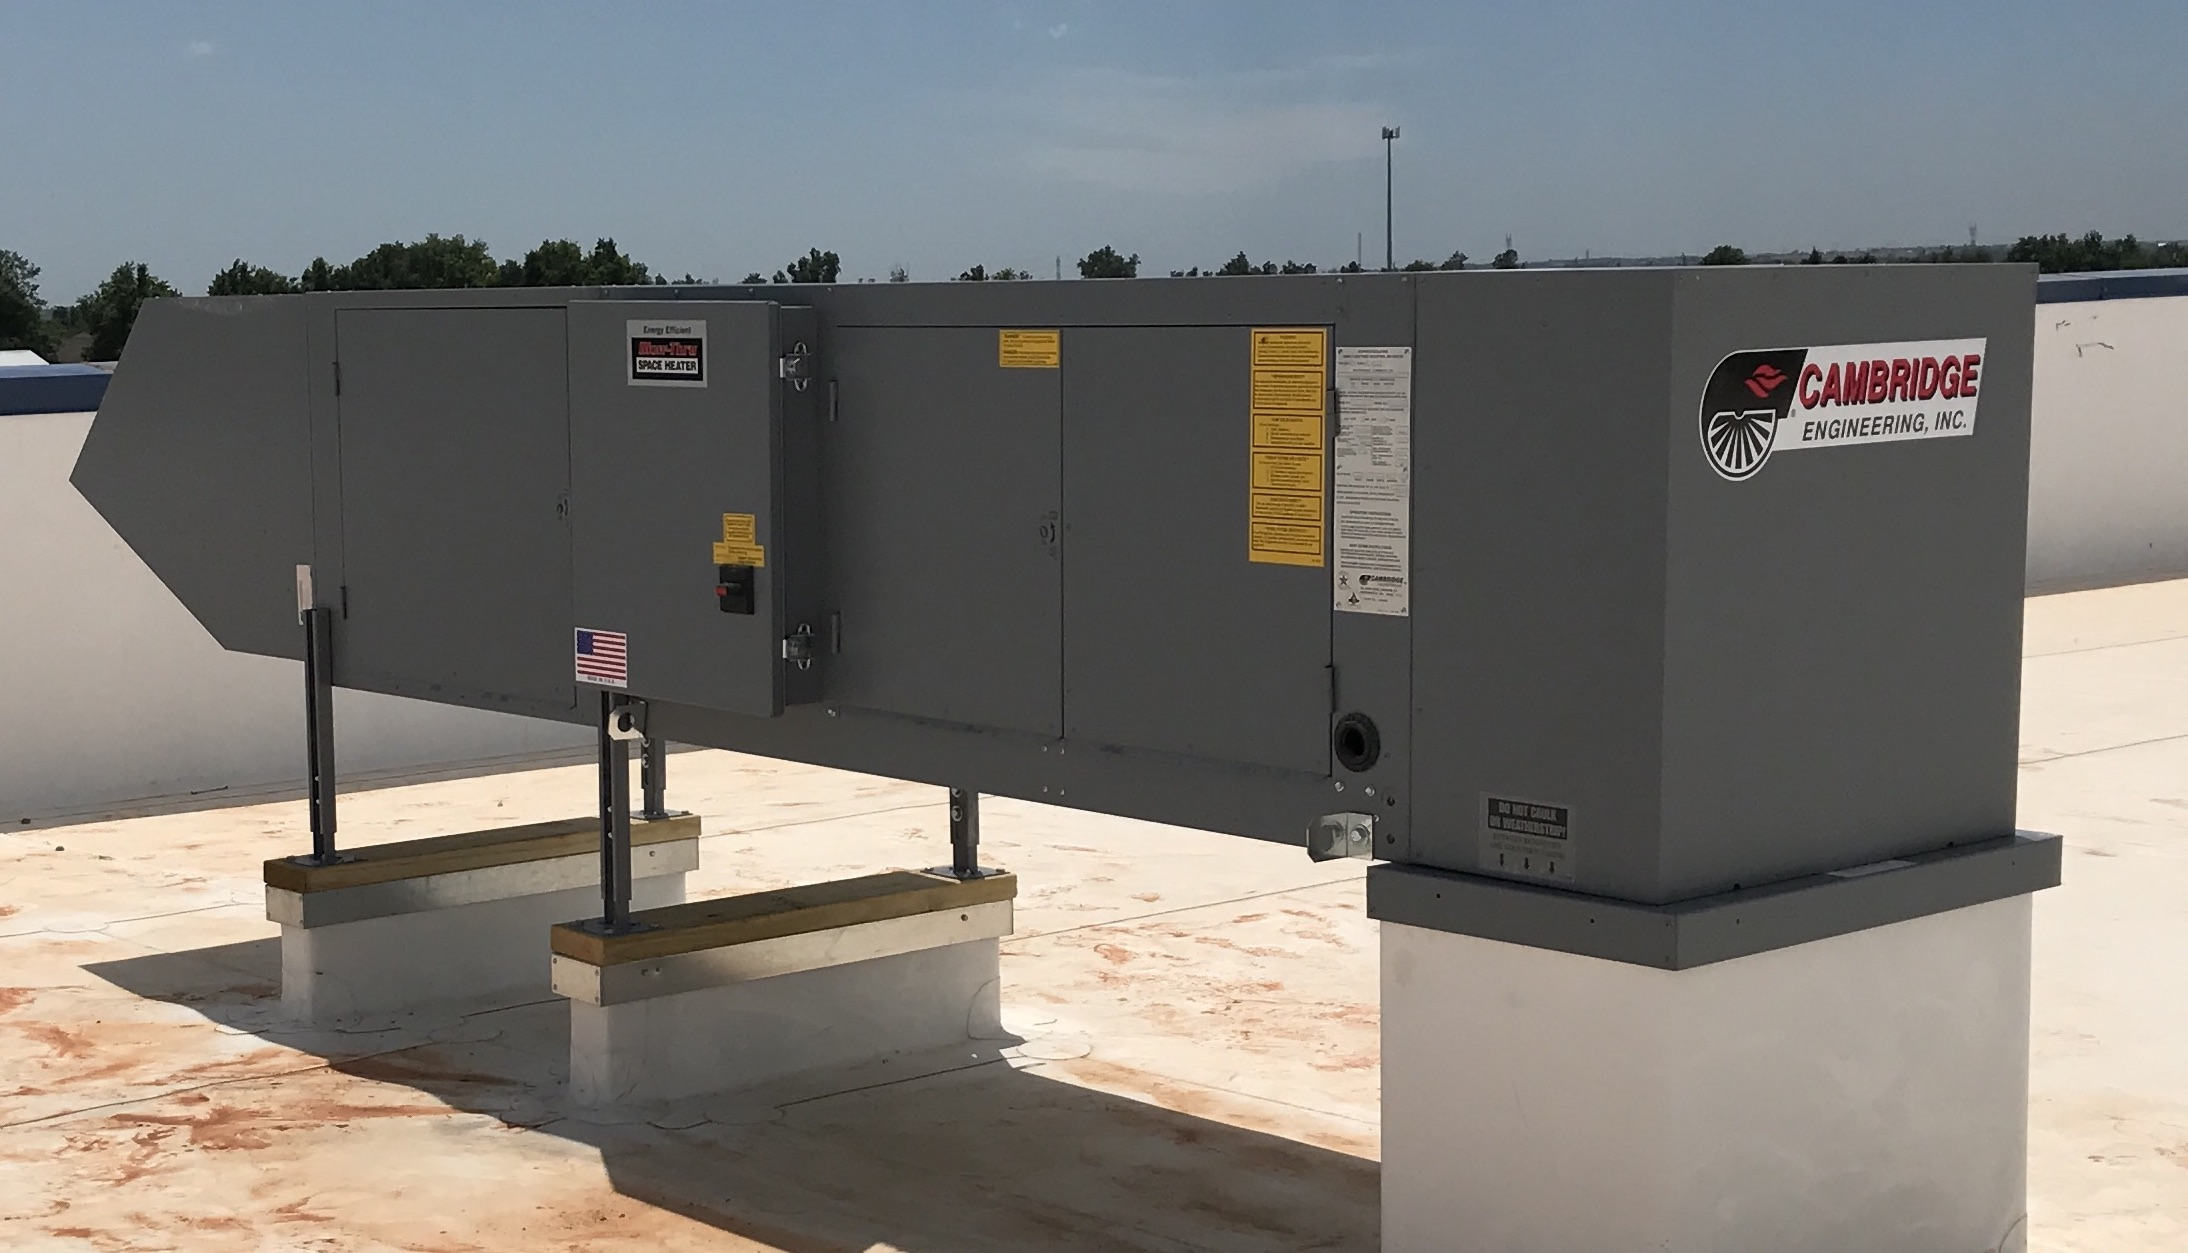 Cambridge S-Series Heater Rooftop Installation - Cambridge Engineering